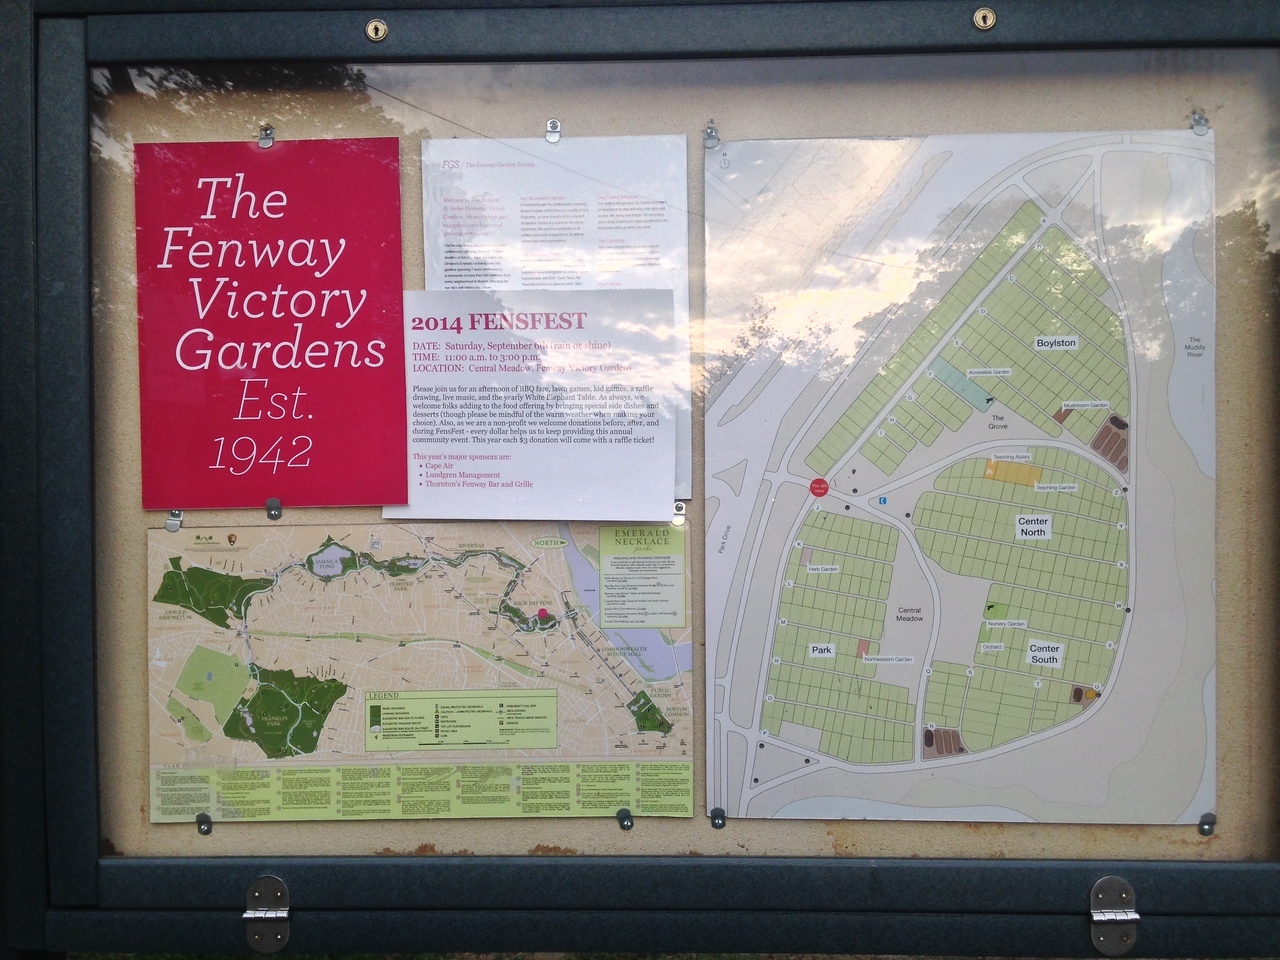 Sign for the Fenway Victory Gardens.